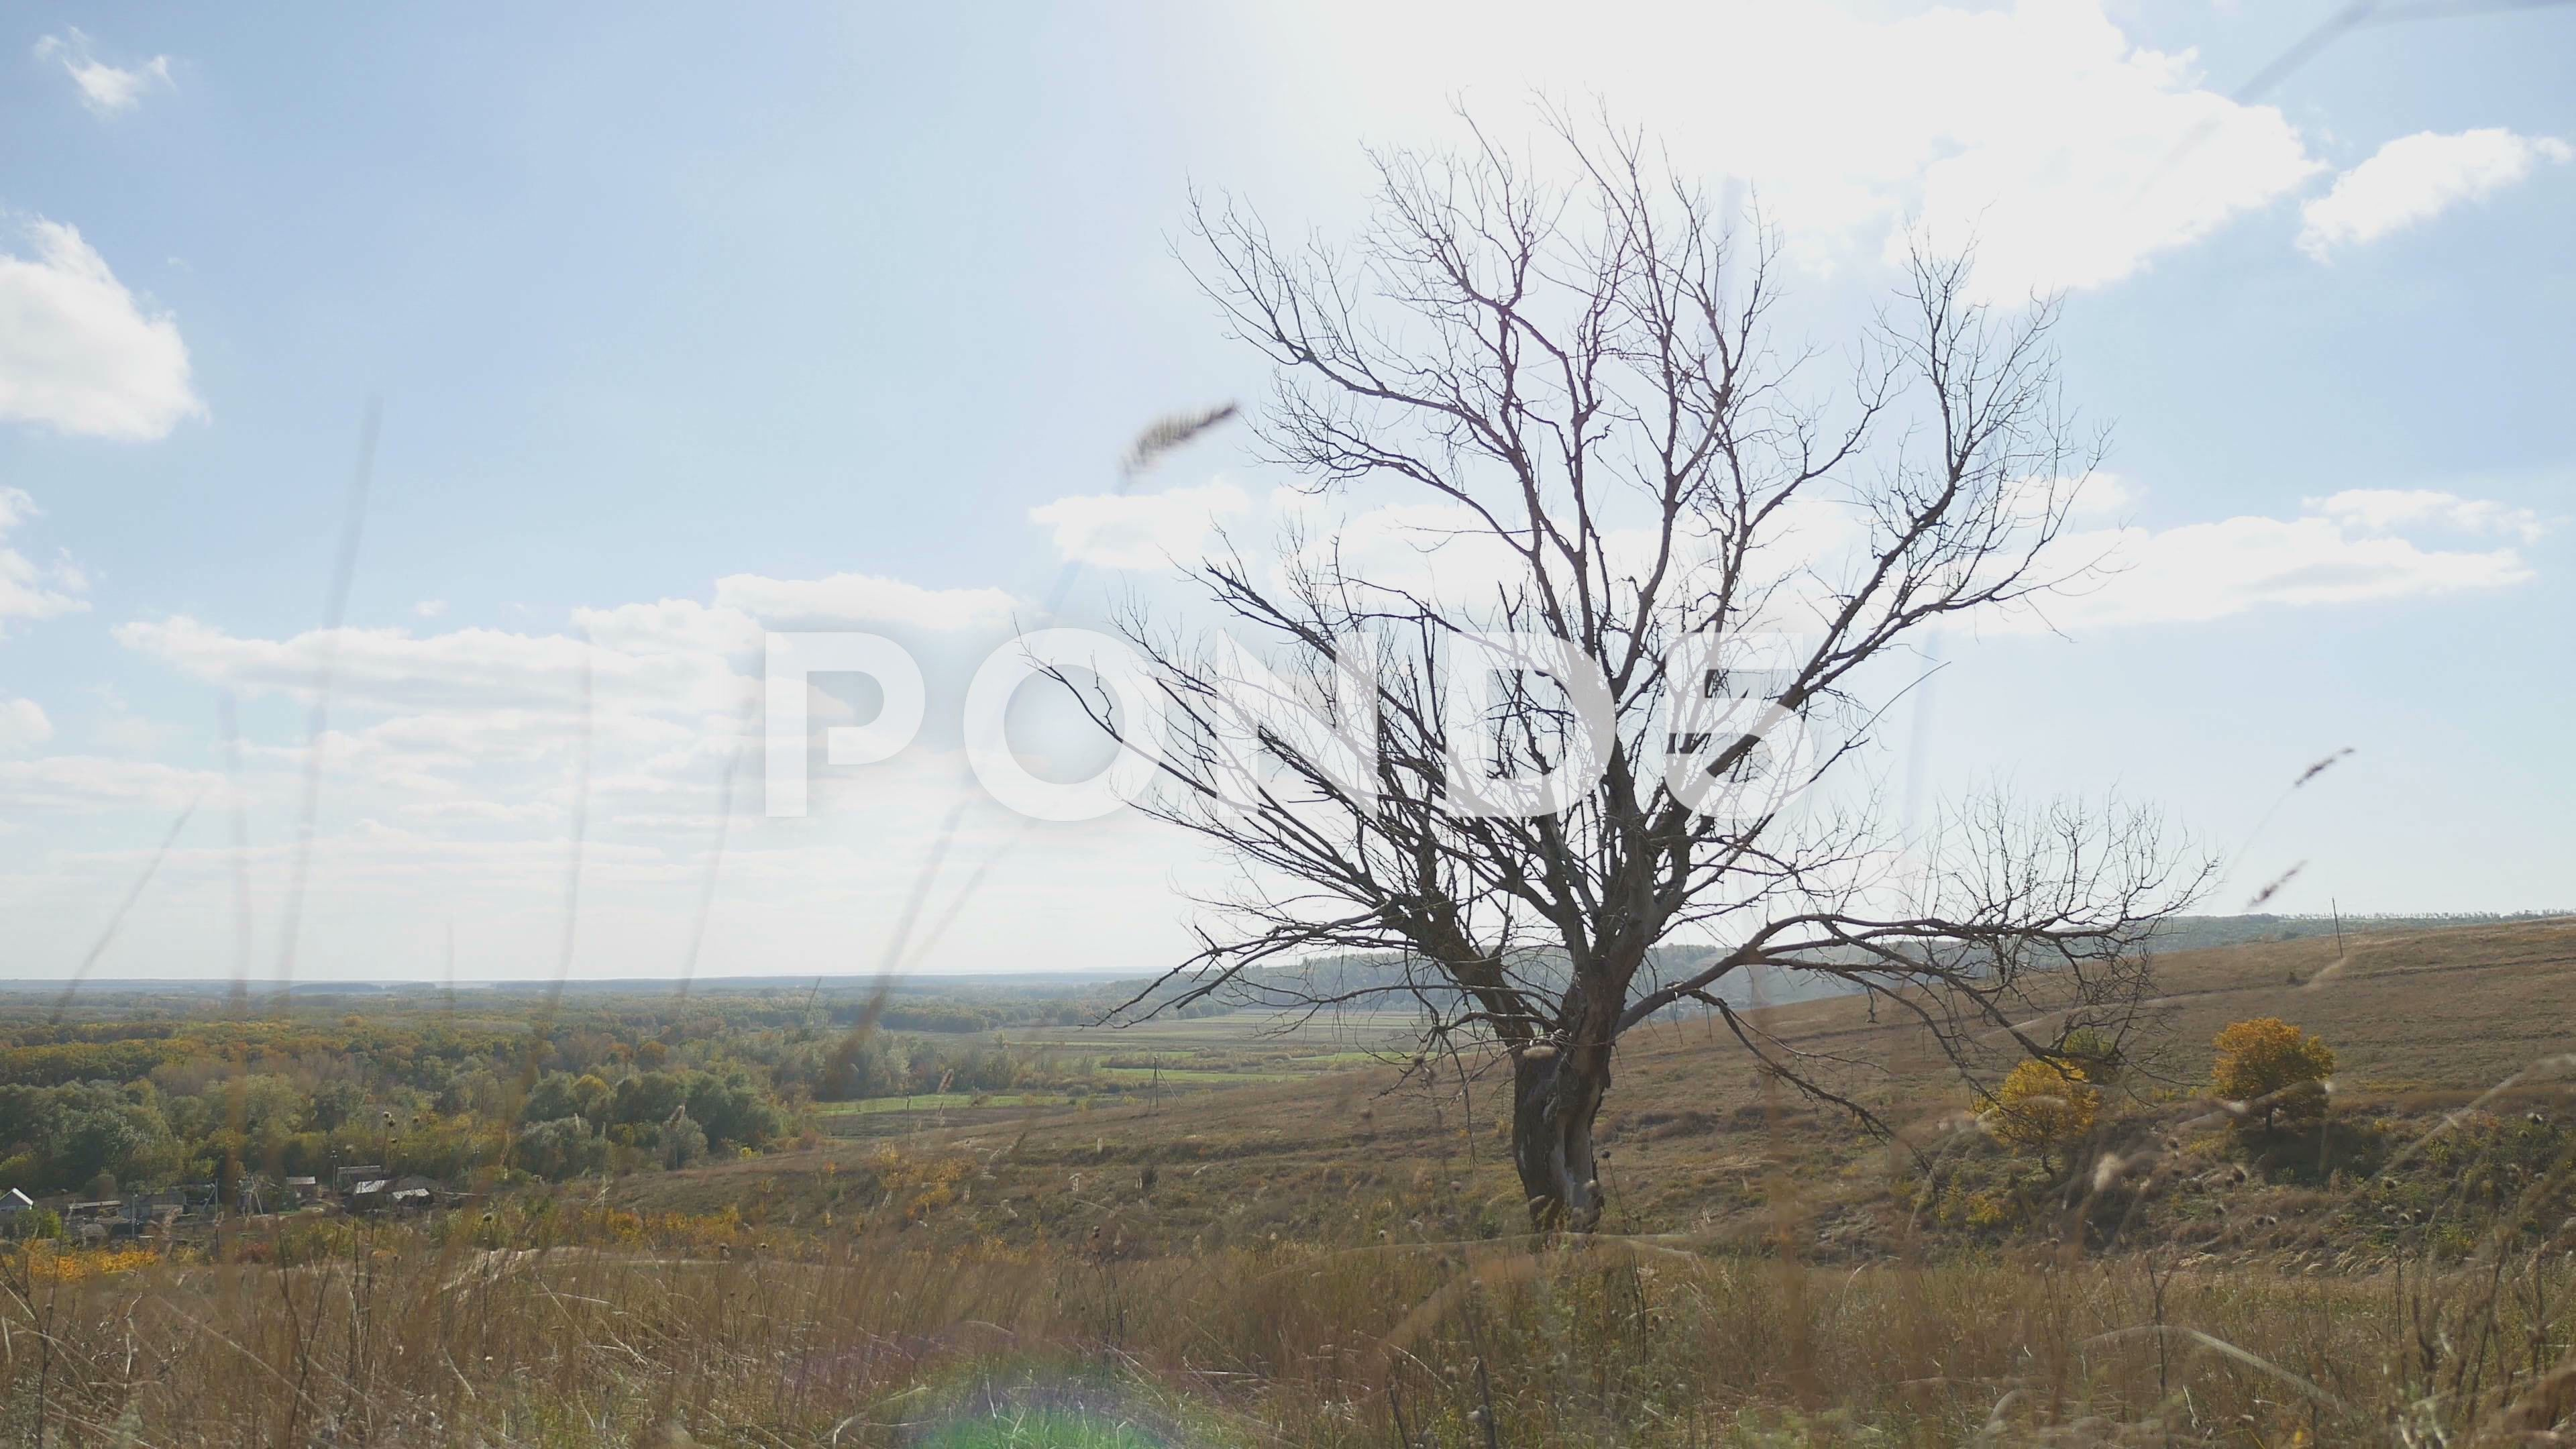 Old Dry Tree In The Autumn Without Leaves Dry Grass Landscape Nature Stock Footage Autumn Leaves Dry Tree Grasses Landscaping Dry Tree Landscape